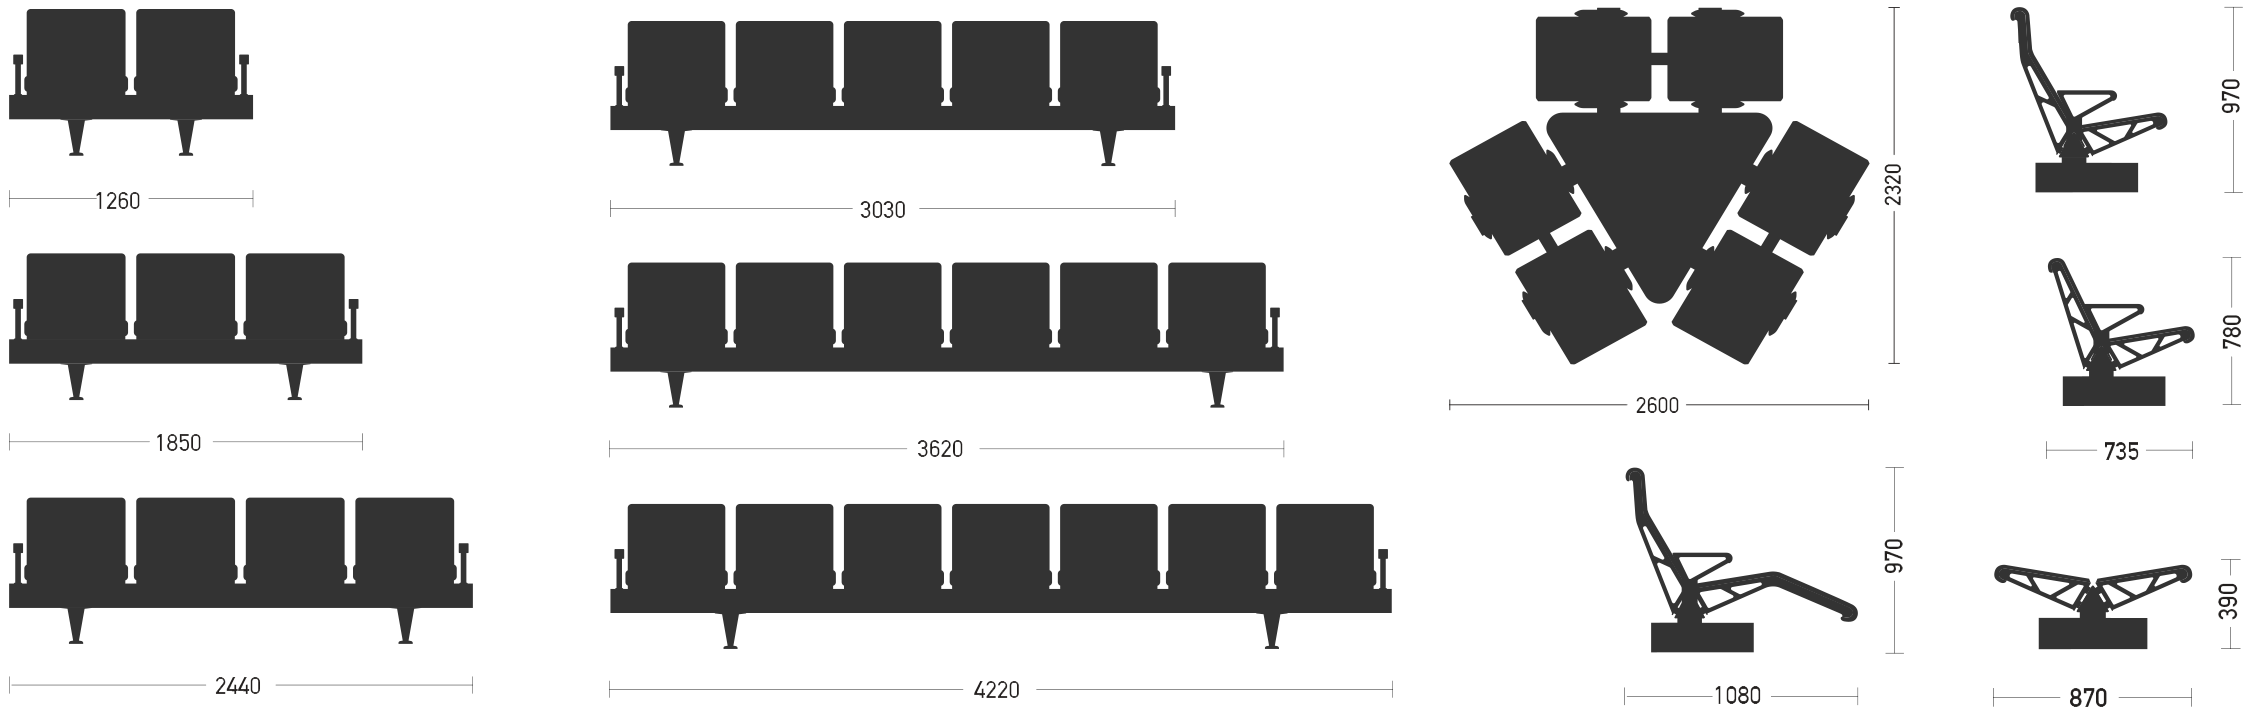 trax seating length height dimensions